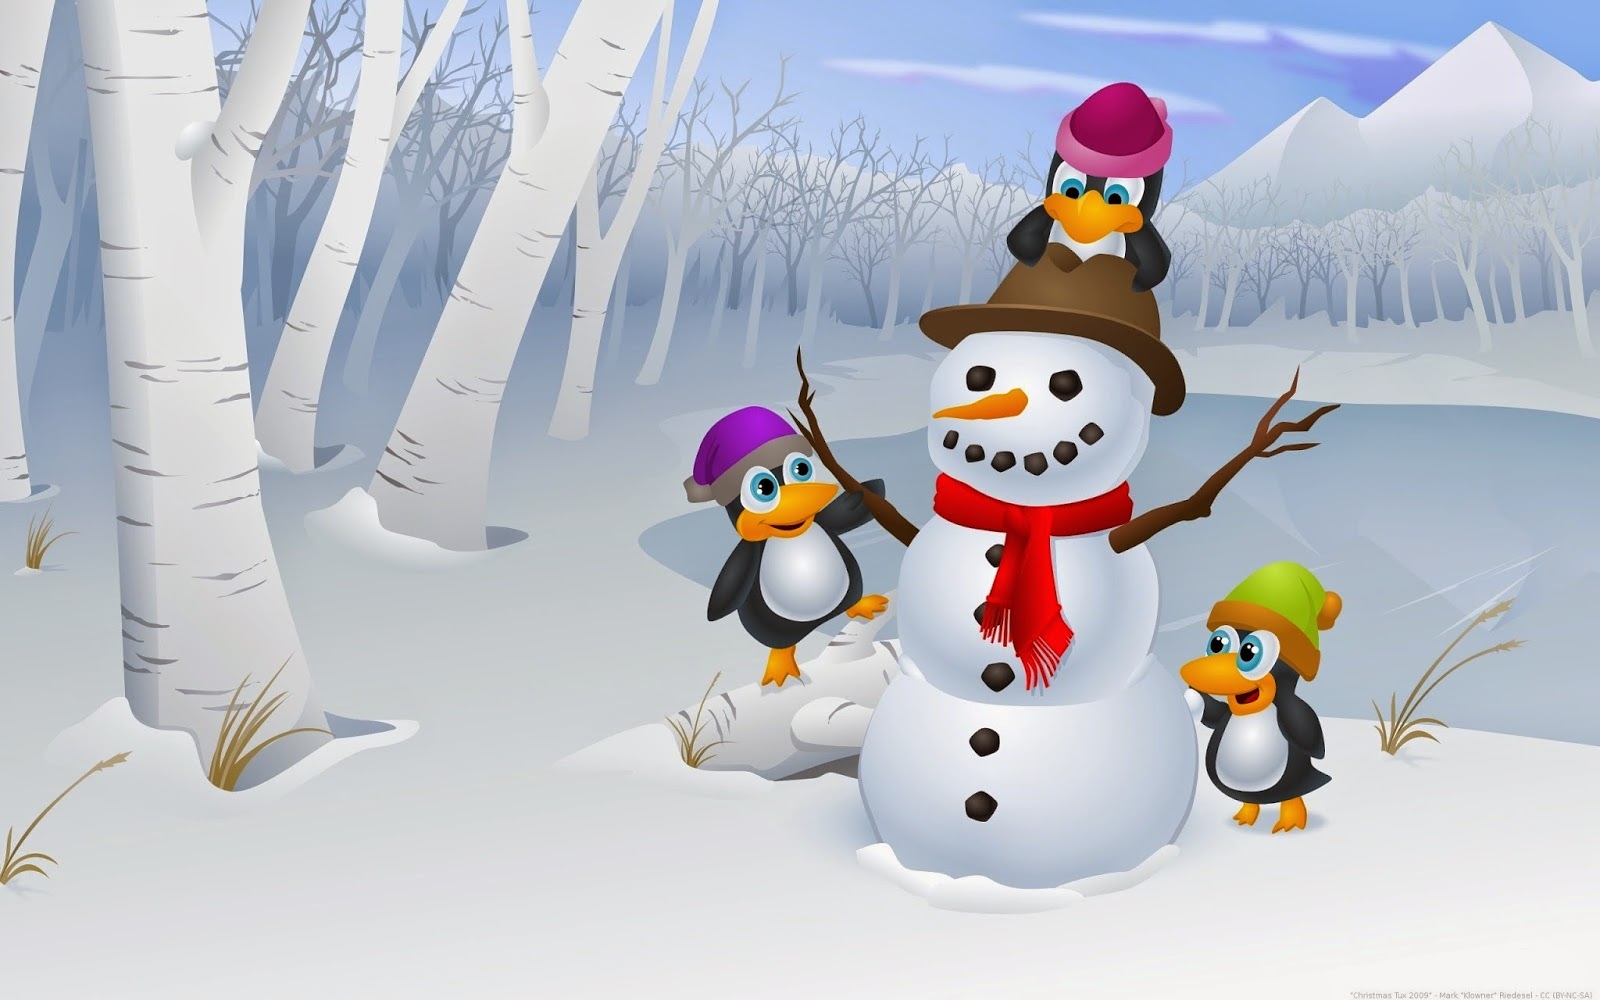 Snowman-with-penguin-family-greeting-card-template-image-for-family-friends-photo.jpg